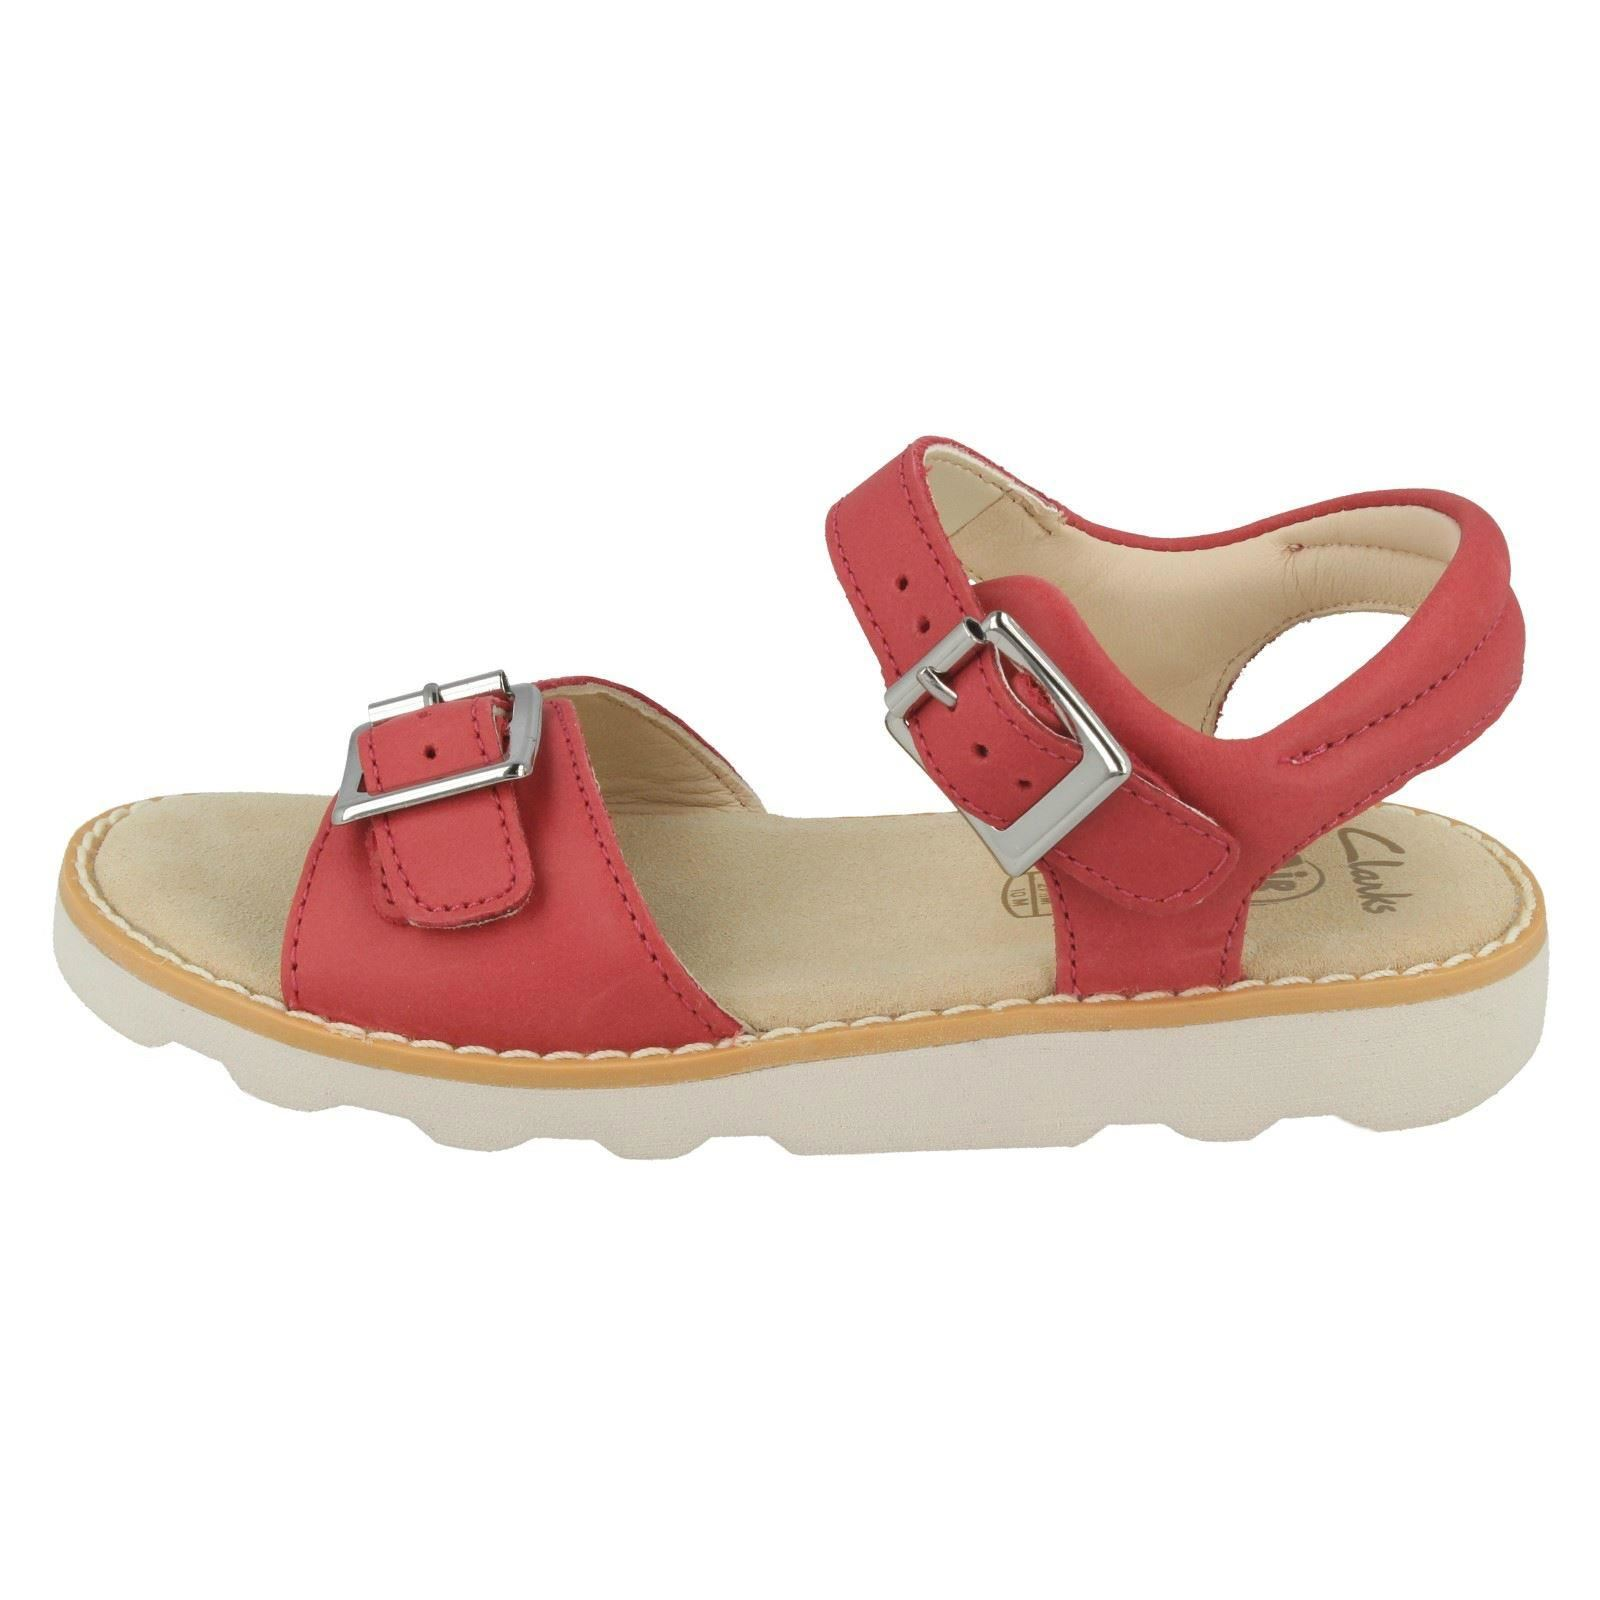 /'Girls Clarks/' Casual  Sandals Crown Bloom